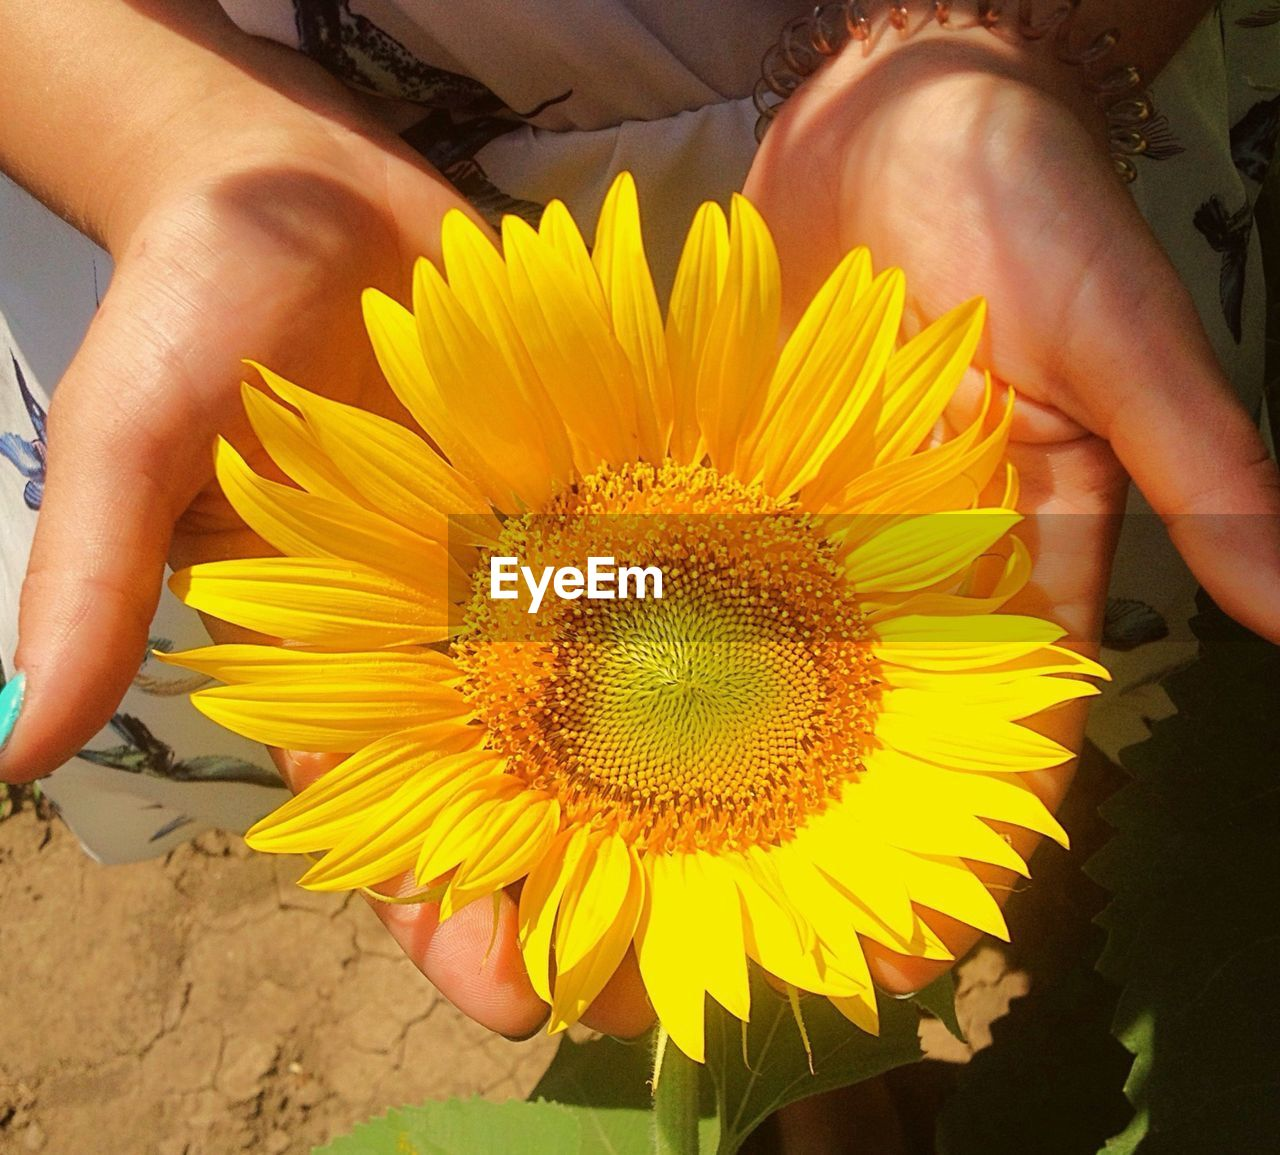 flower, yellow, petal, real people, human hand, human body part, one person, beauty in nature, fragility, freshness, nature, flower head, outdoors, holding, sunflower, day, lifestyles, women, plant, close-up, blooming, people